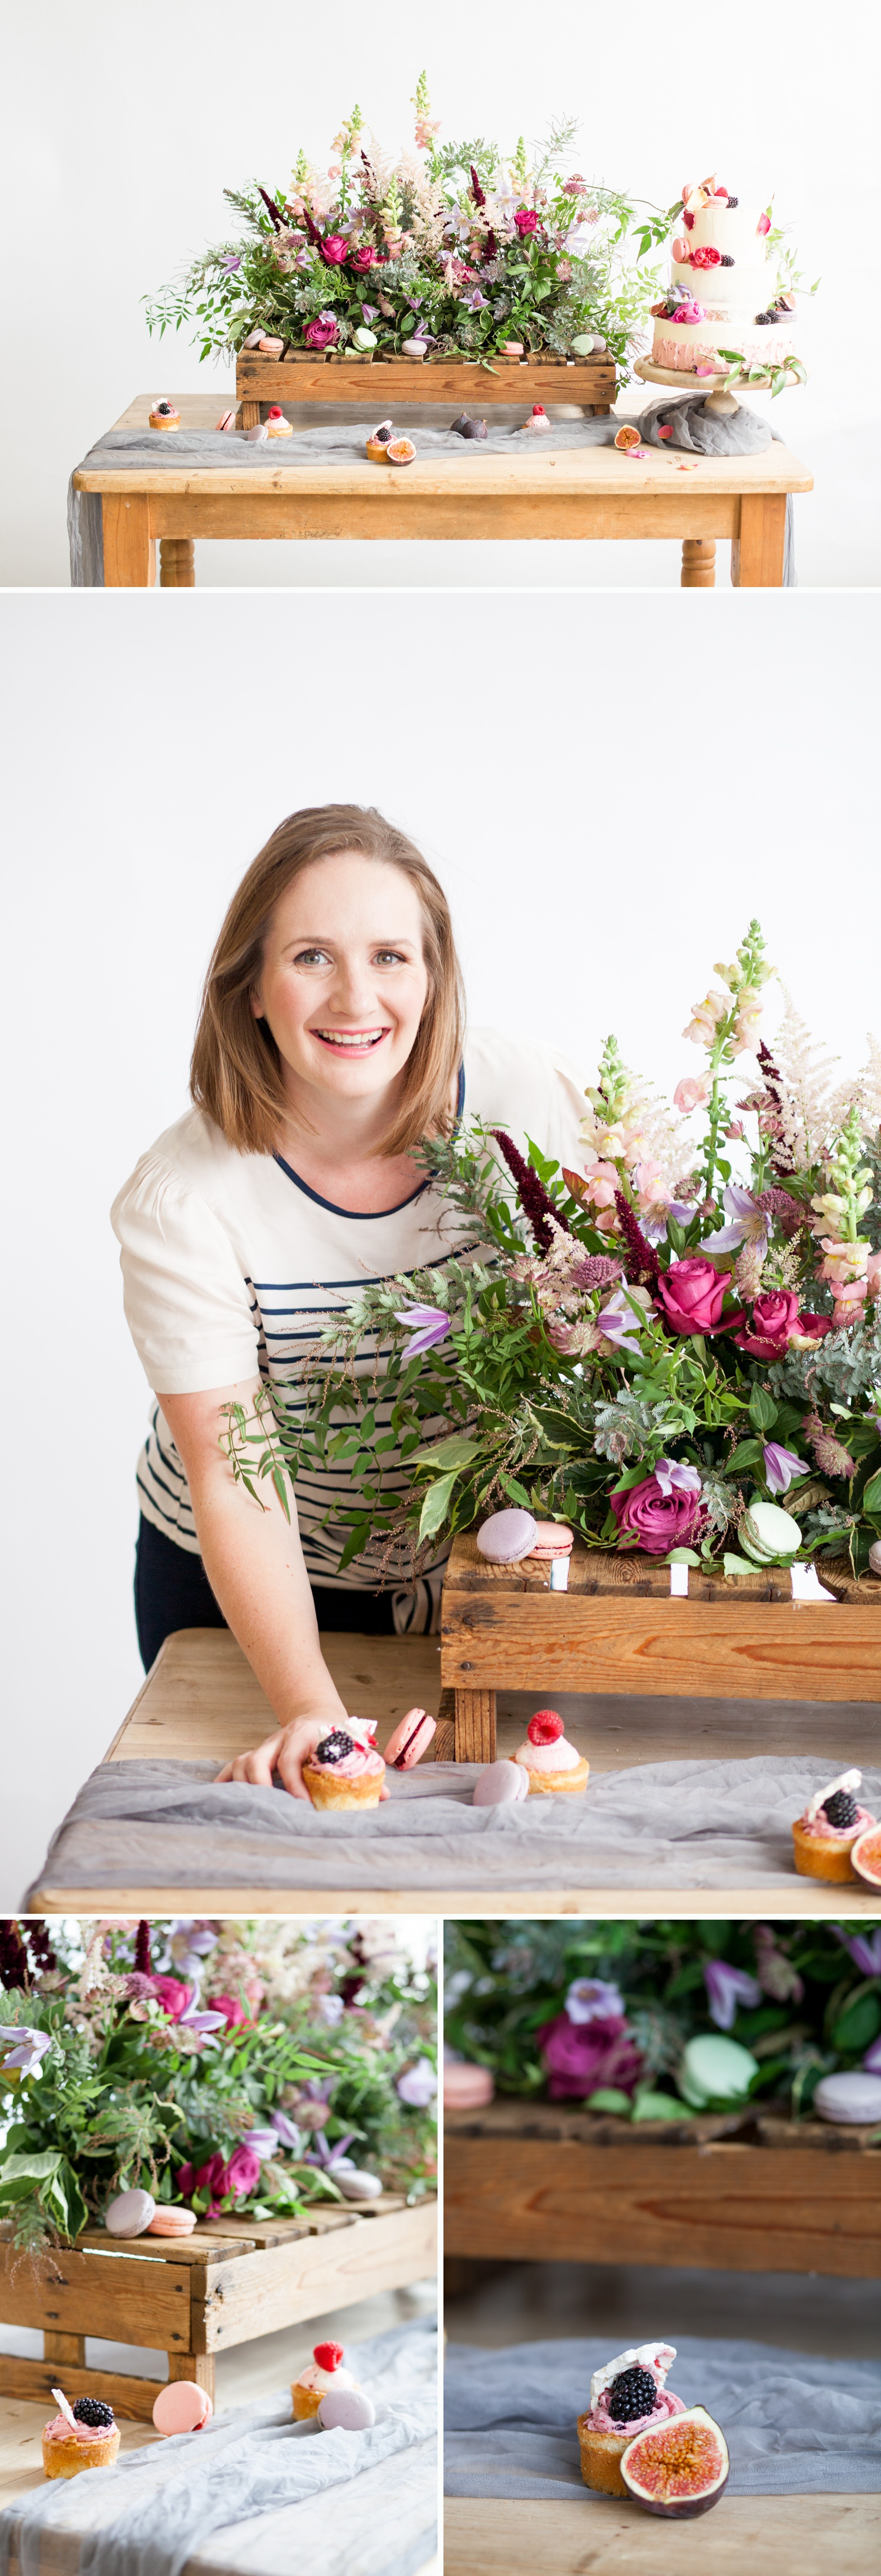 personal branding shoot for Milk Street Kitchen - will flowers and cakes